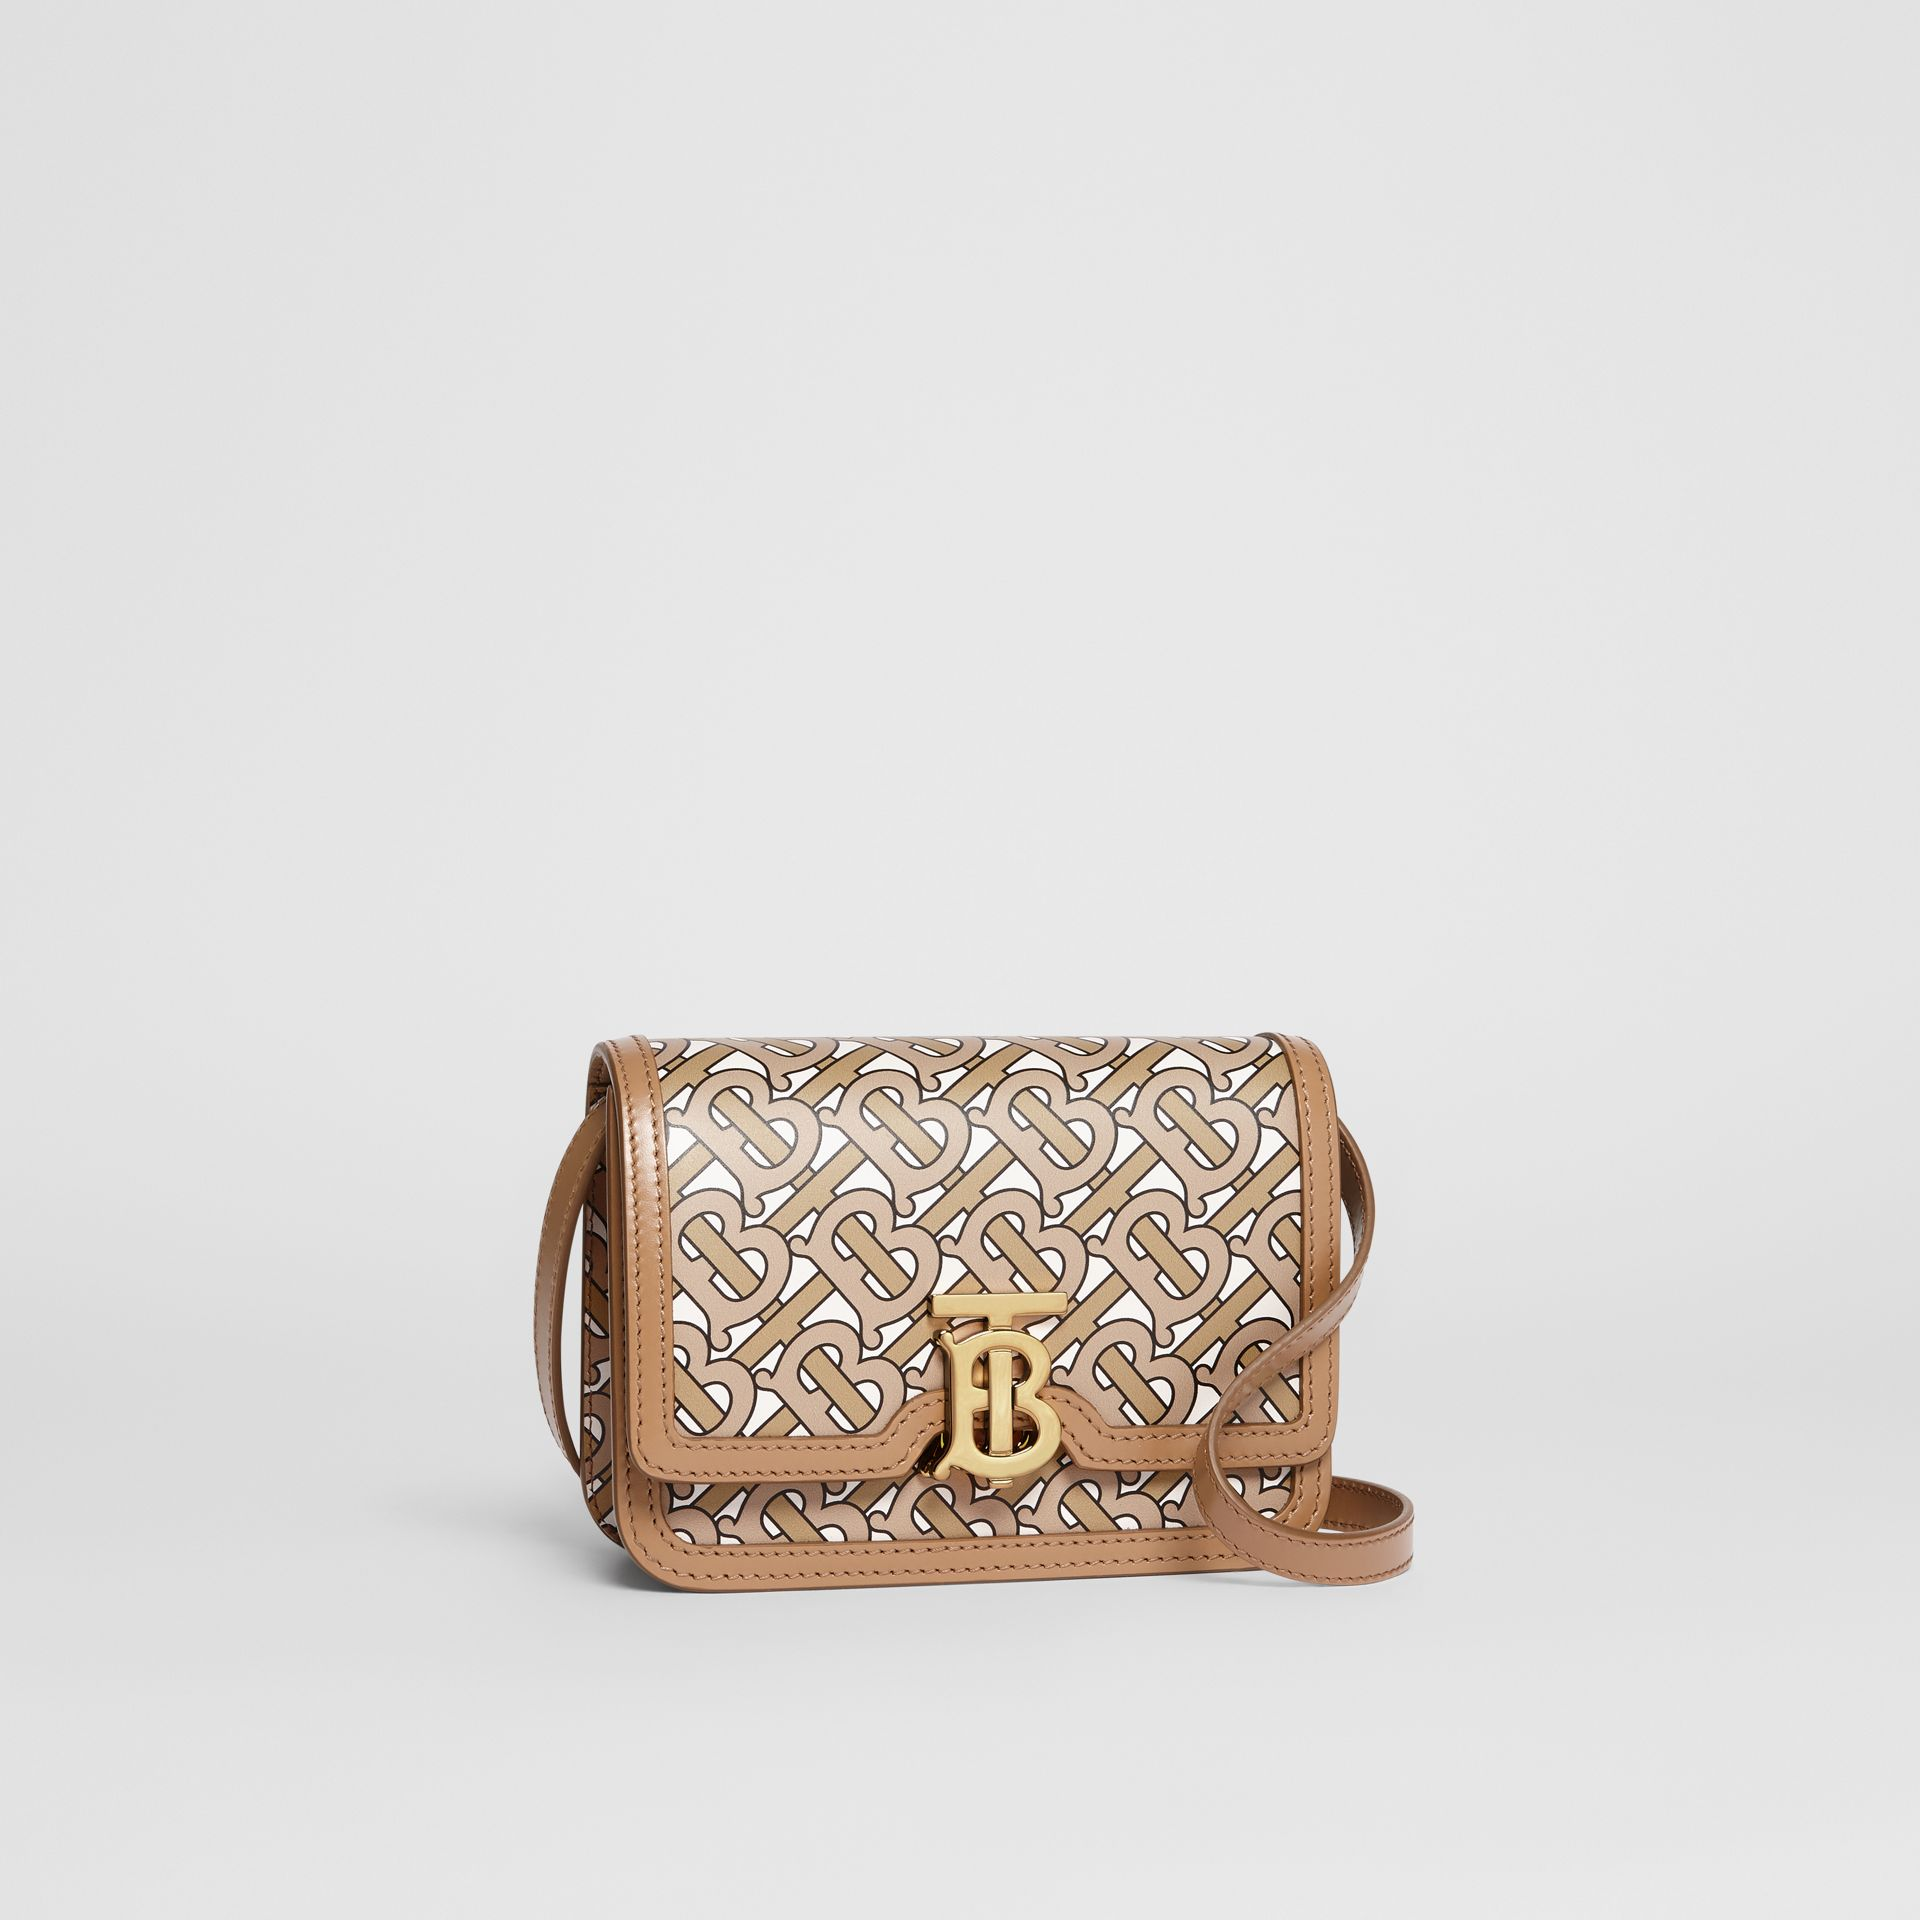 Mini Monogram Print Leather TB Bag in Beige - Women | Burberry Canada - gallery image 6